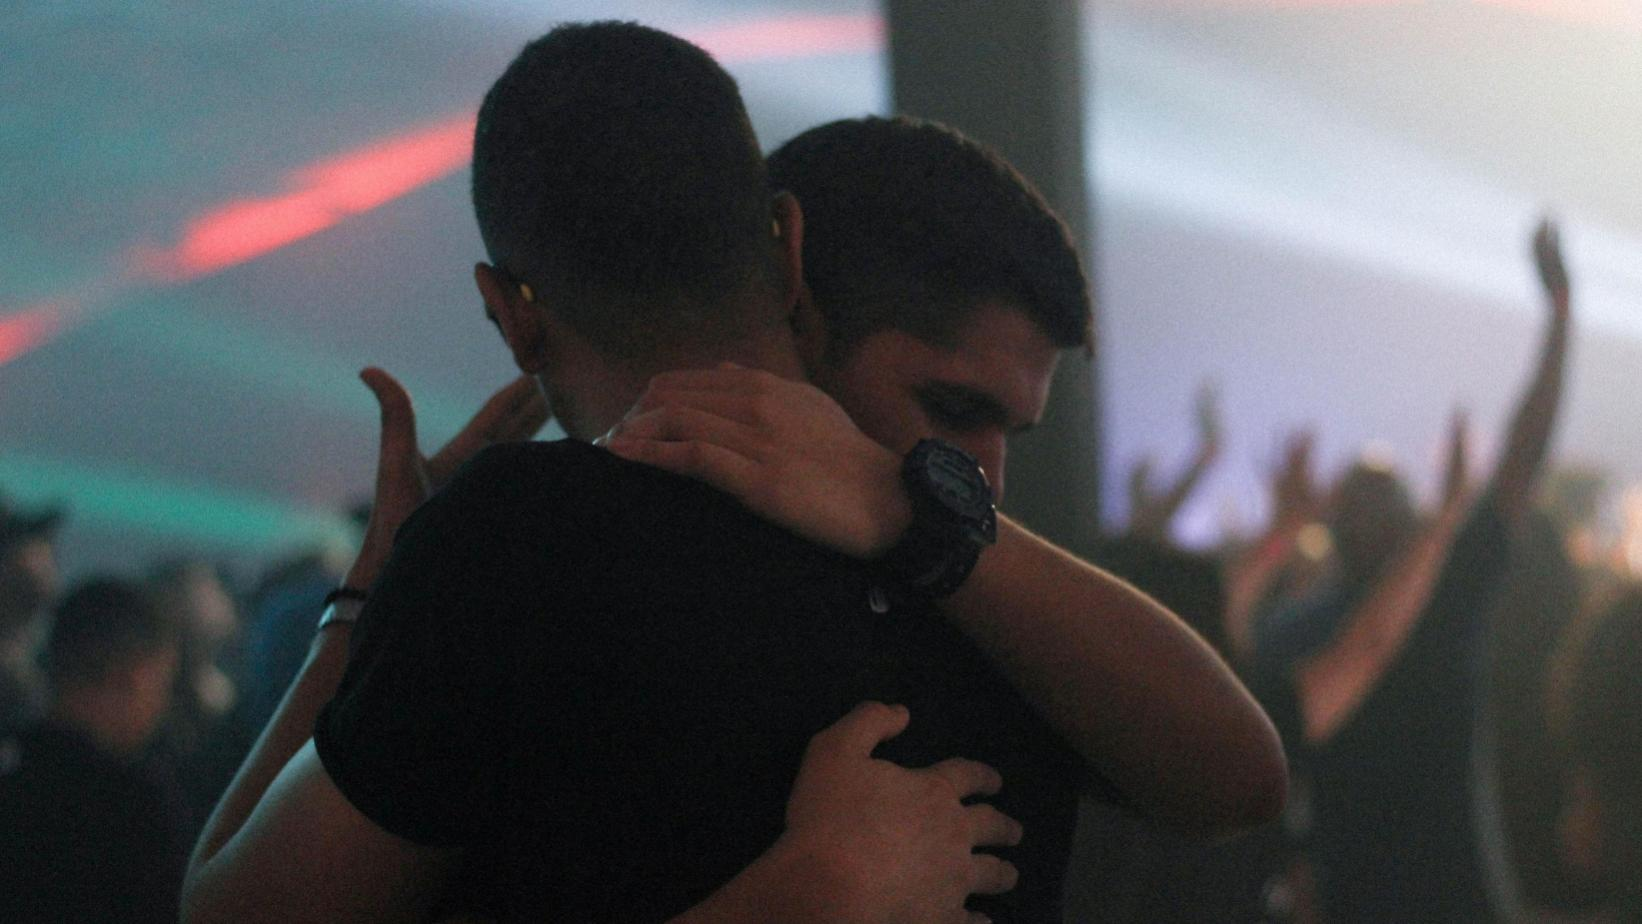 two people hug in the crowd of a concert